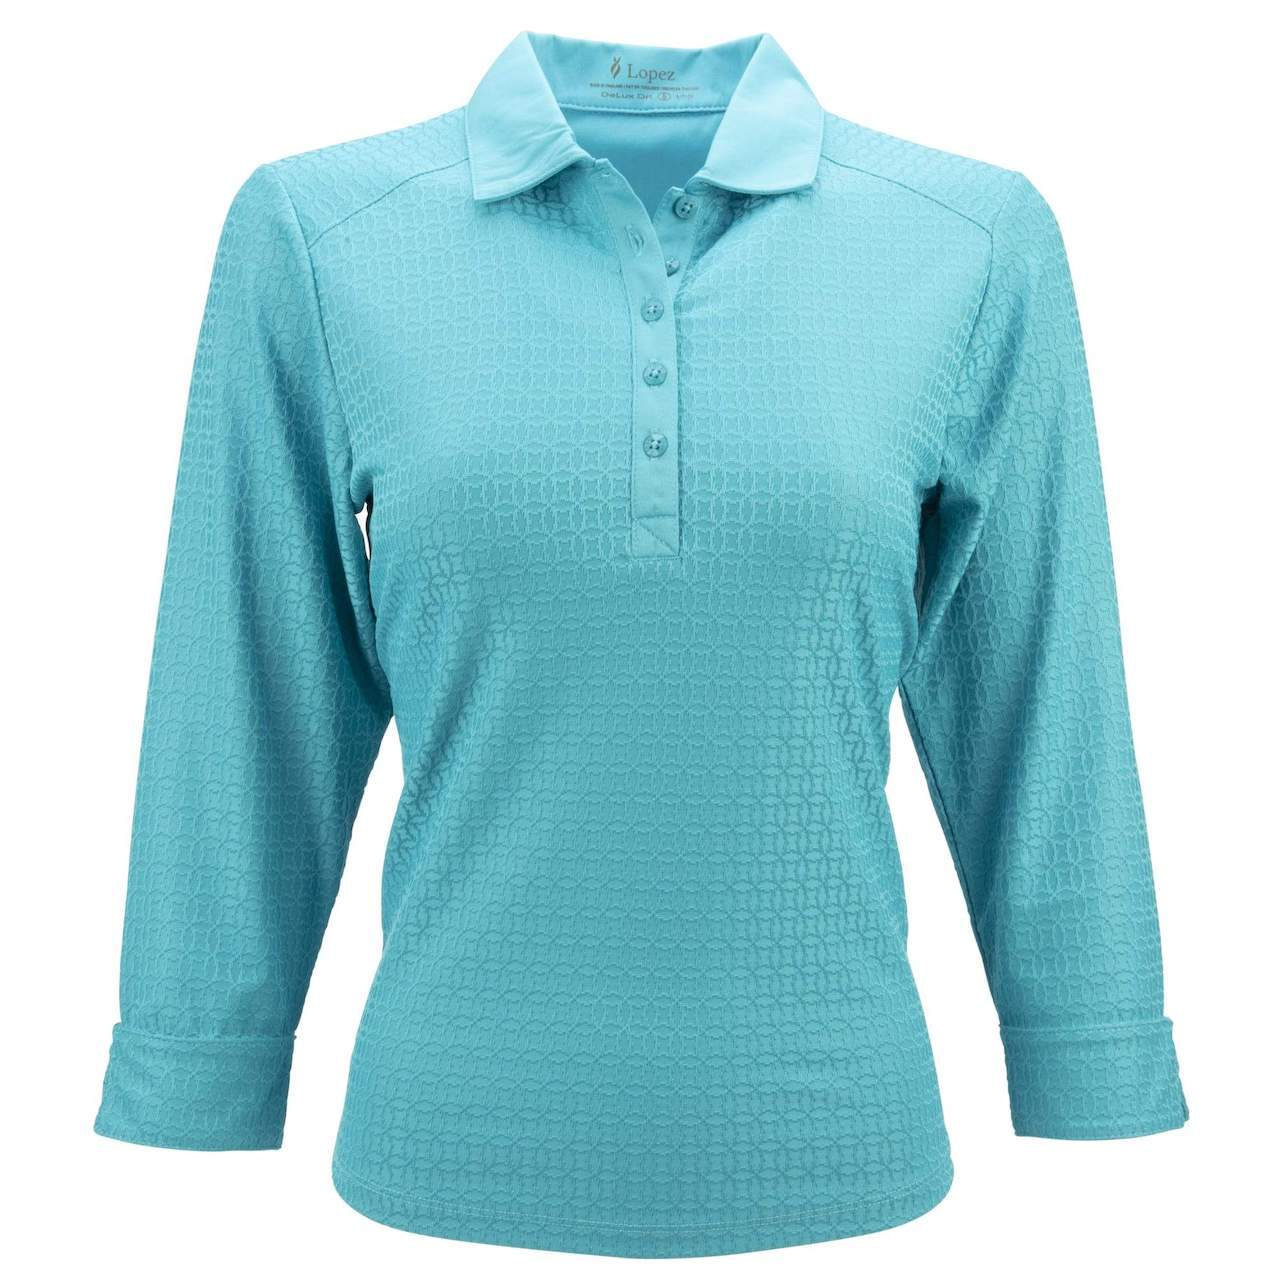 Nancy Lopez Journey 3/4 Sleeve Polo